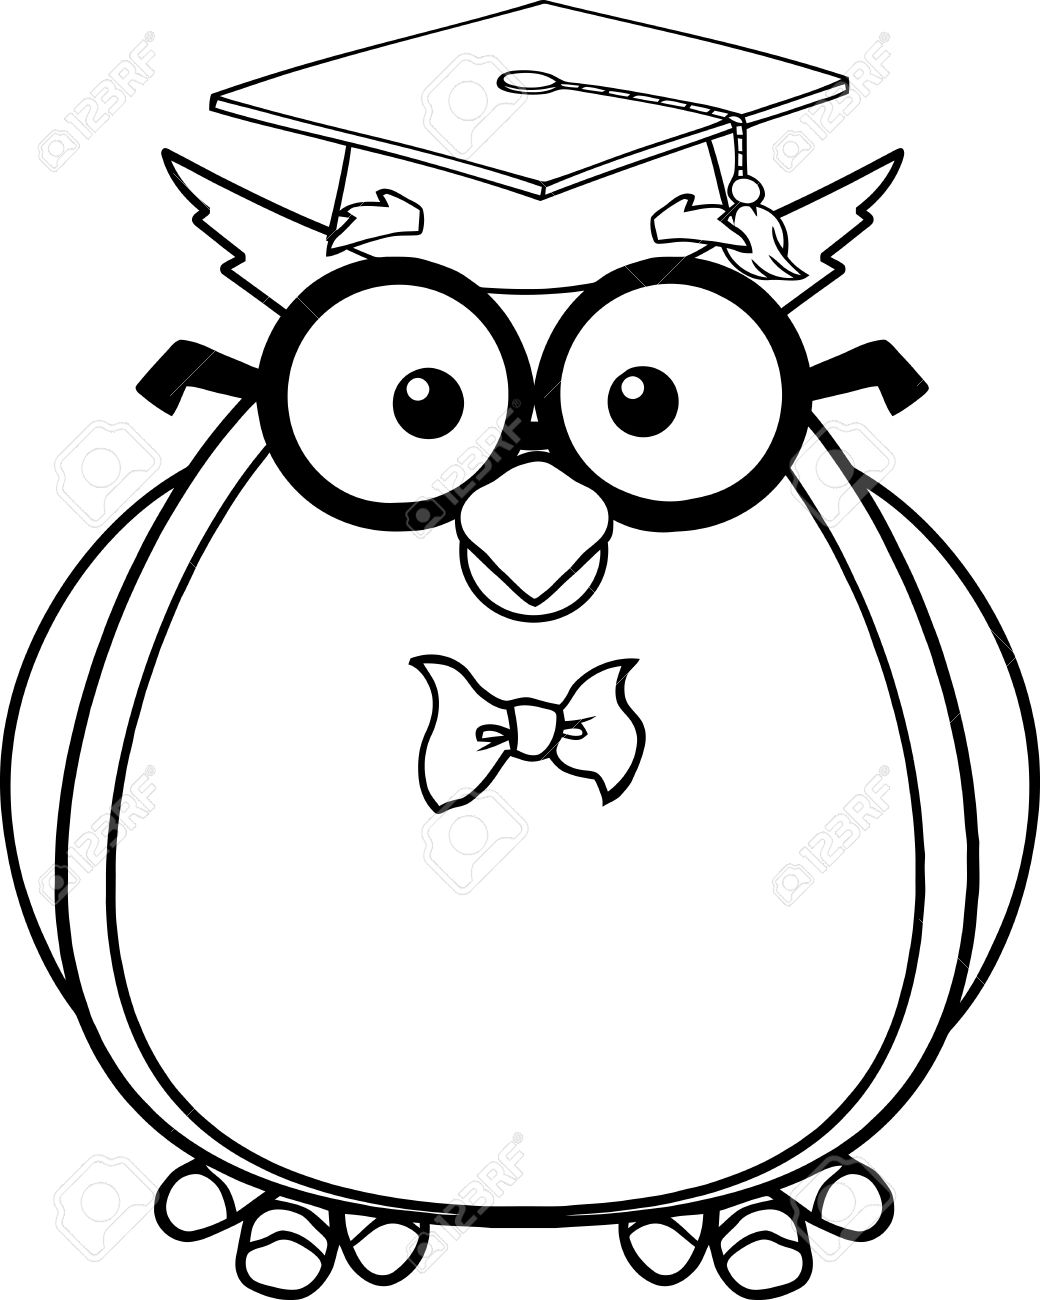 black and white owl drawing at getdrawings com free for personal rh getdrawings com black and white owl clip art owl clipart black and white vector